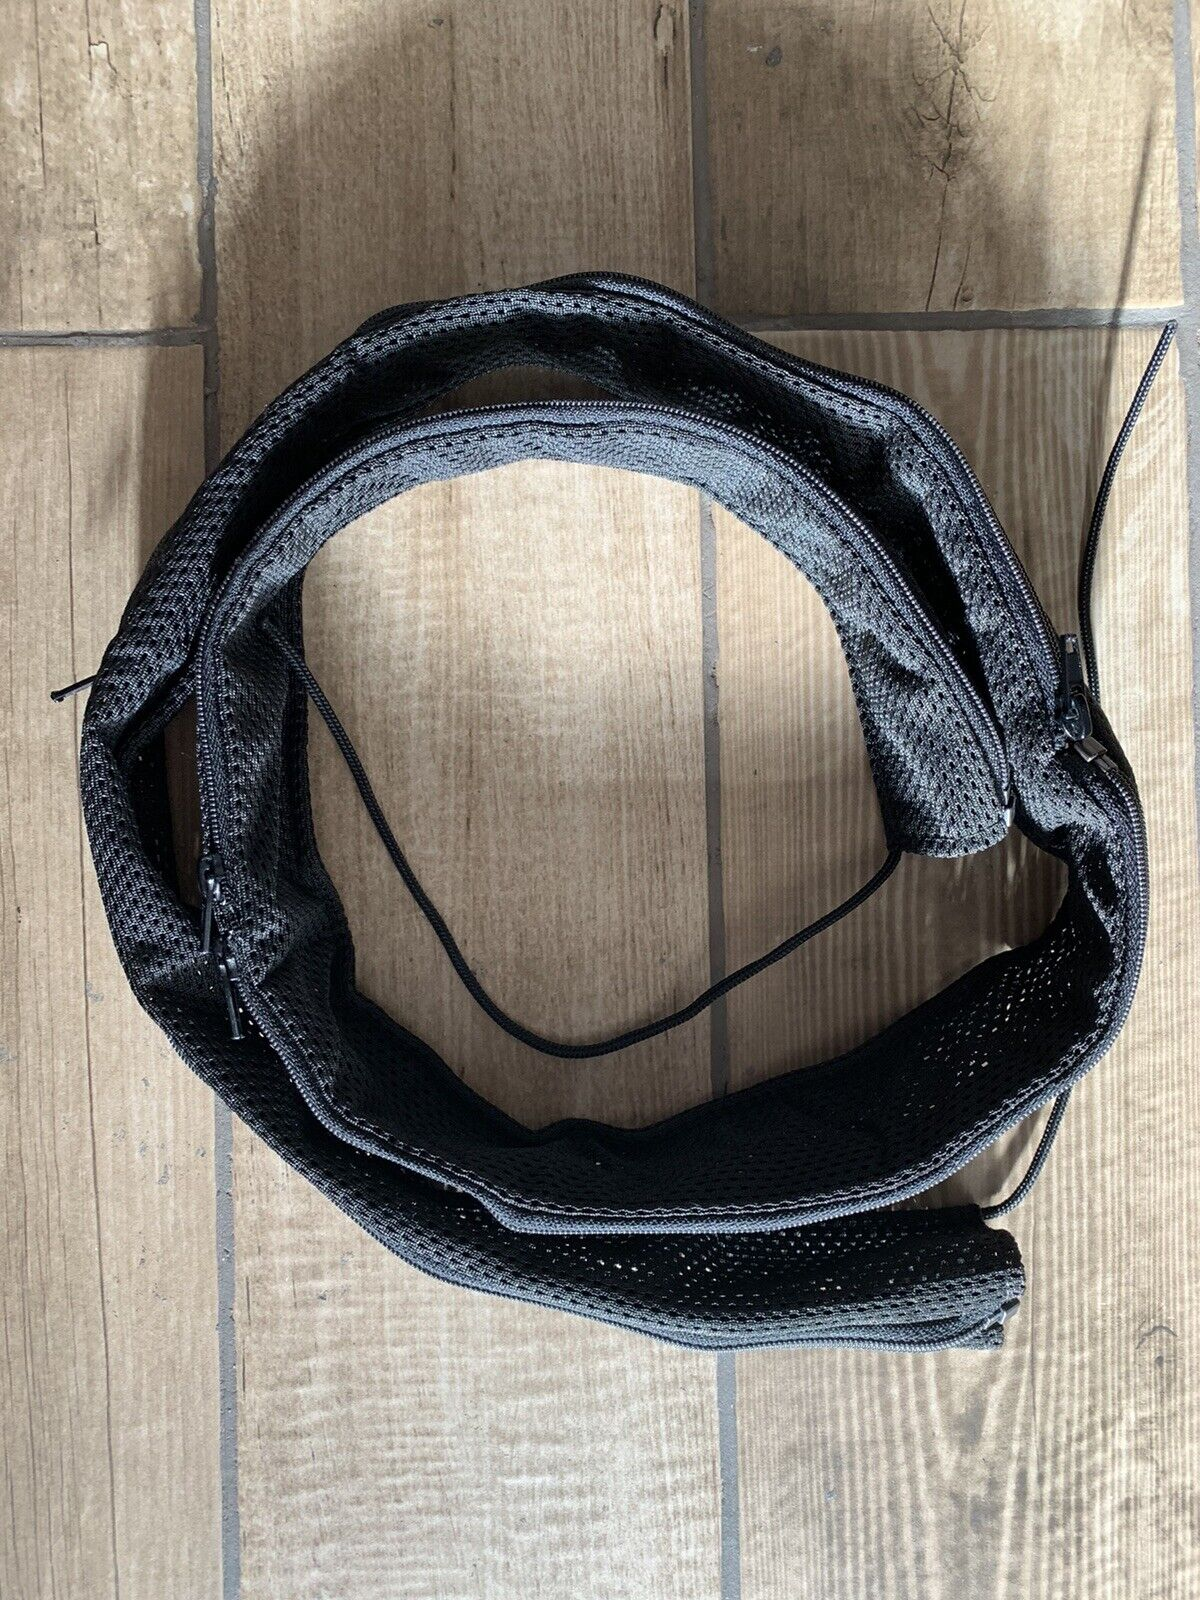 Cable Management Sleeves, Cable Tidy Sleeve with Zip